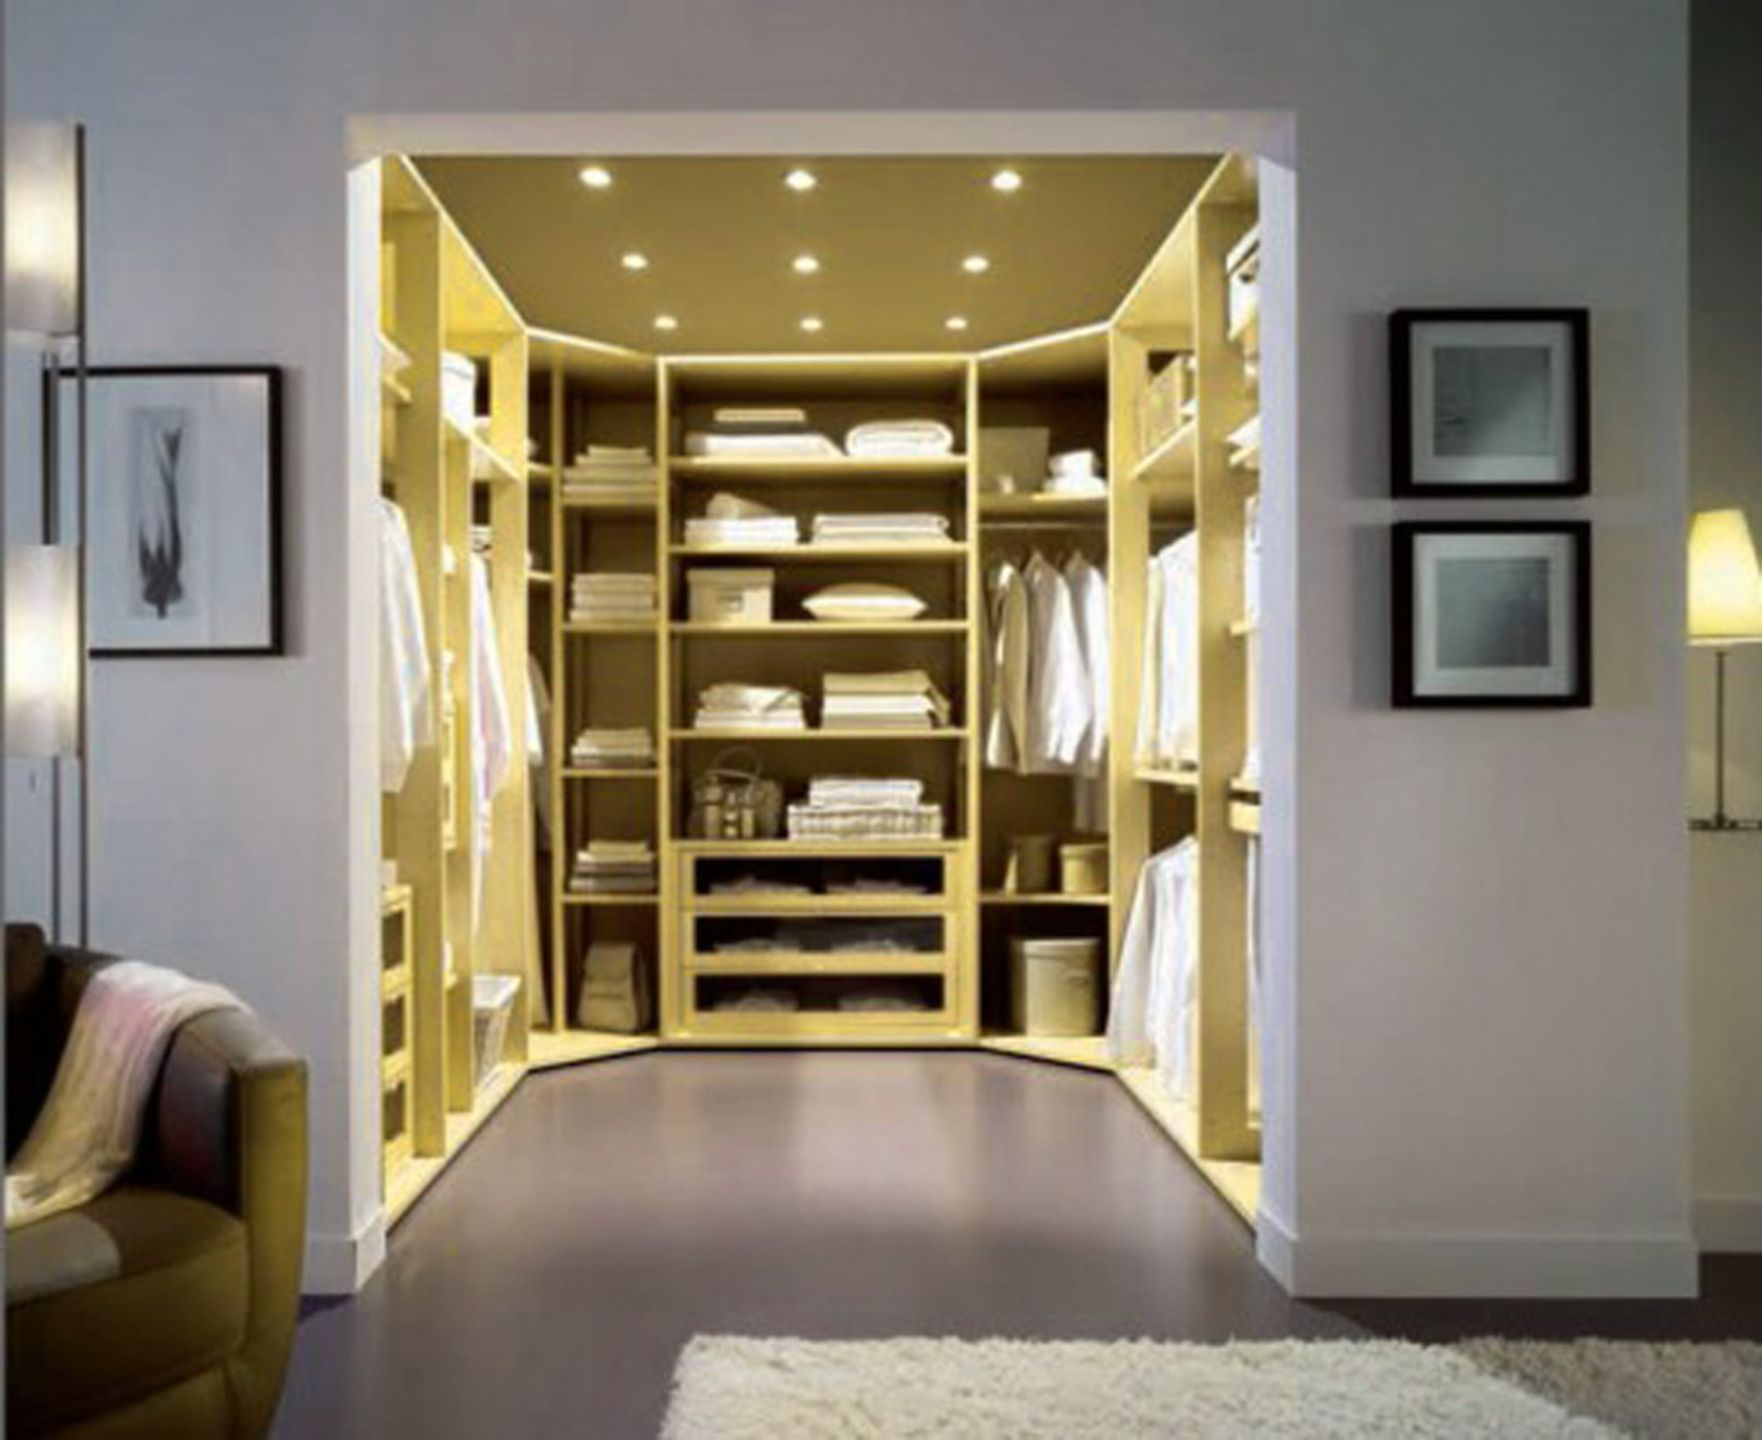 Small Bedroom Closet Design Ideas Pleasing 21 Small Walk In Closet Ideas And Organizer Designs  Bedroom Inspiration Design